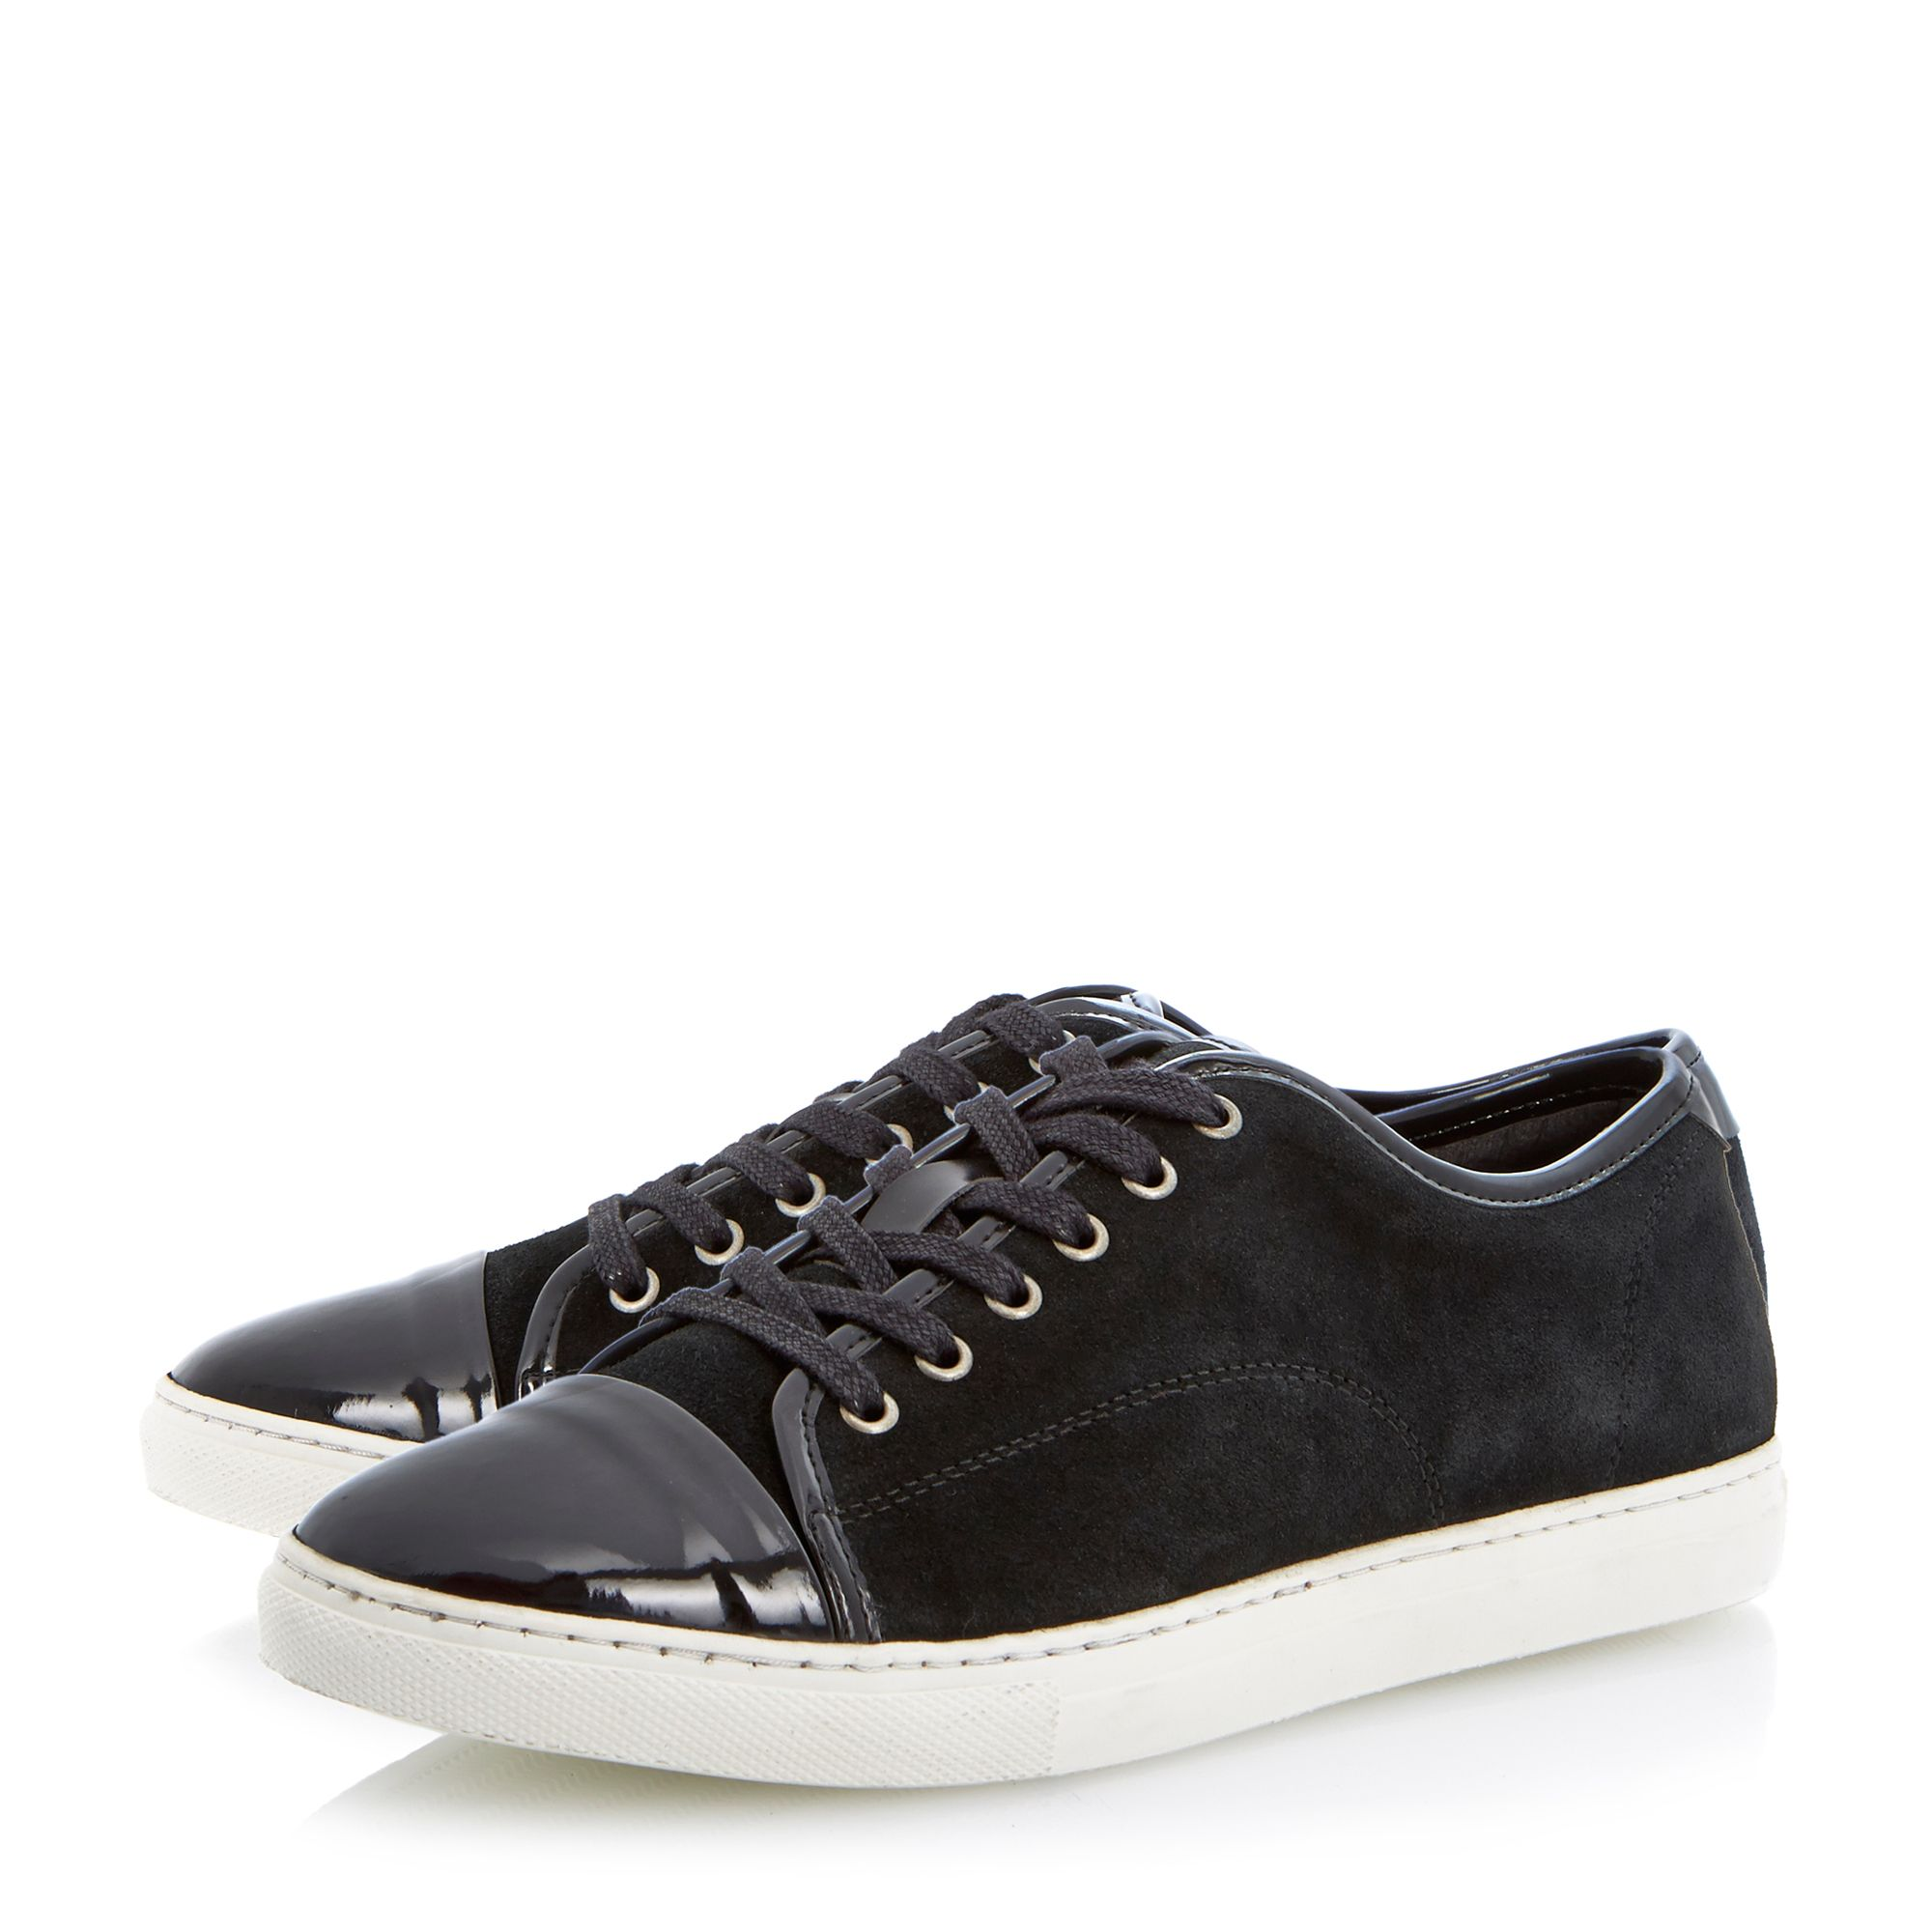 Tickle sleek profile lace up trainers